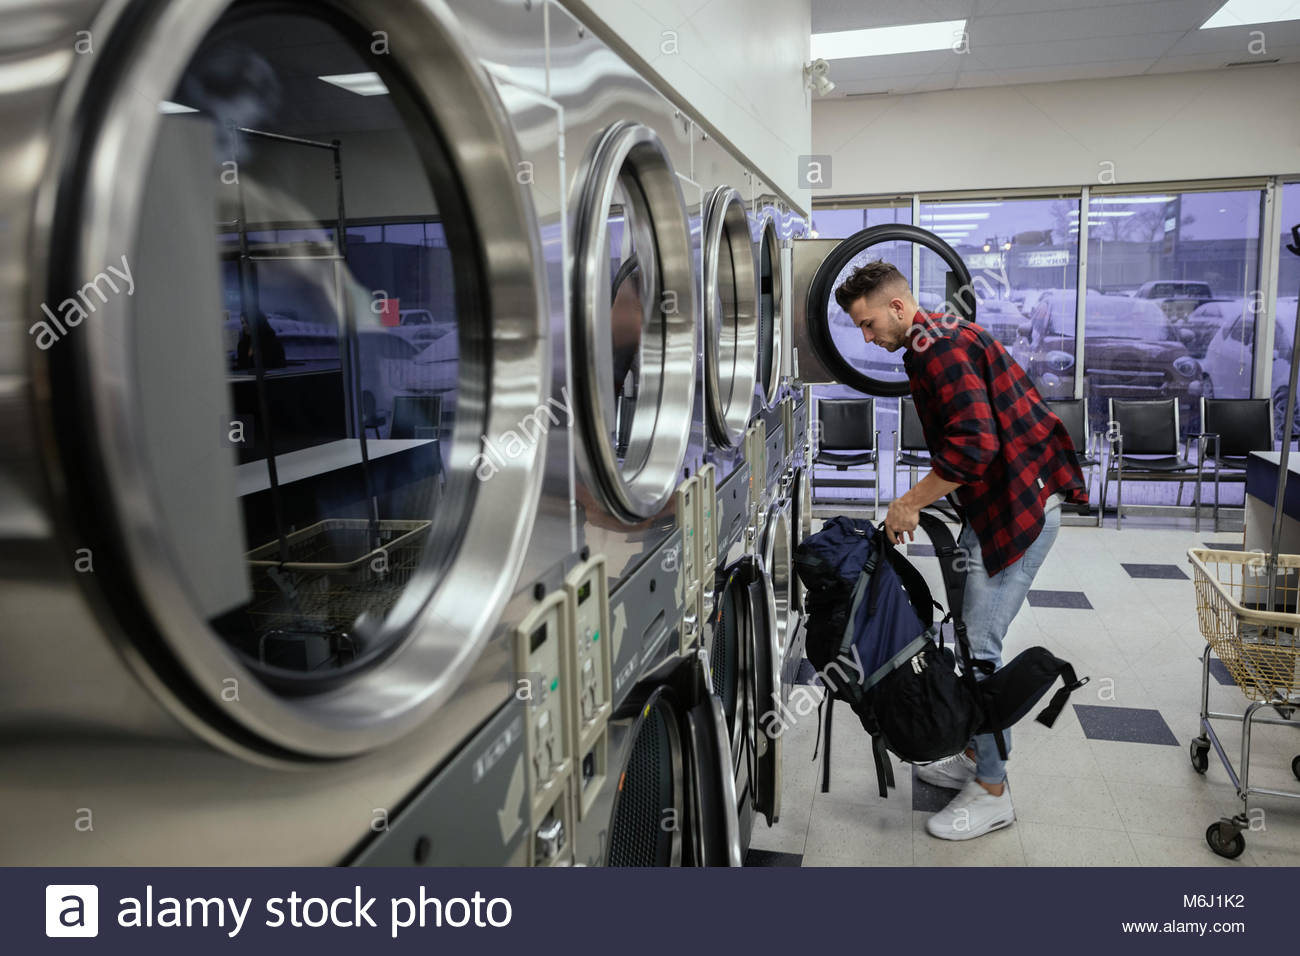 Young man with backpack doing laundry at laundromat - Stock Image